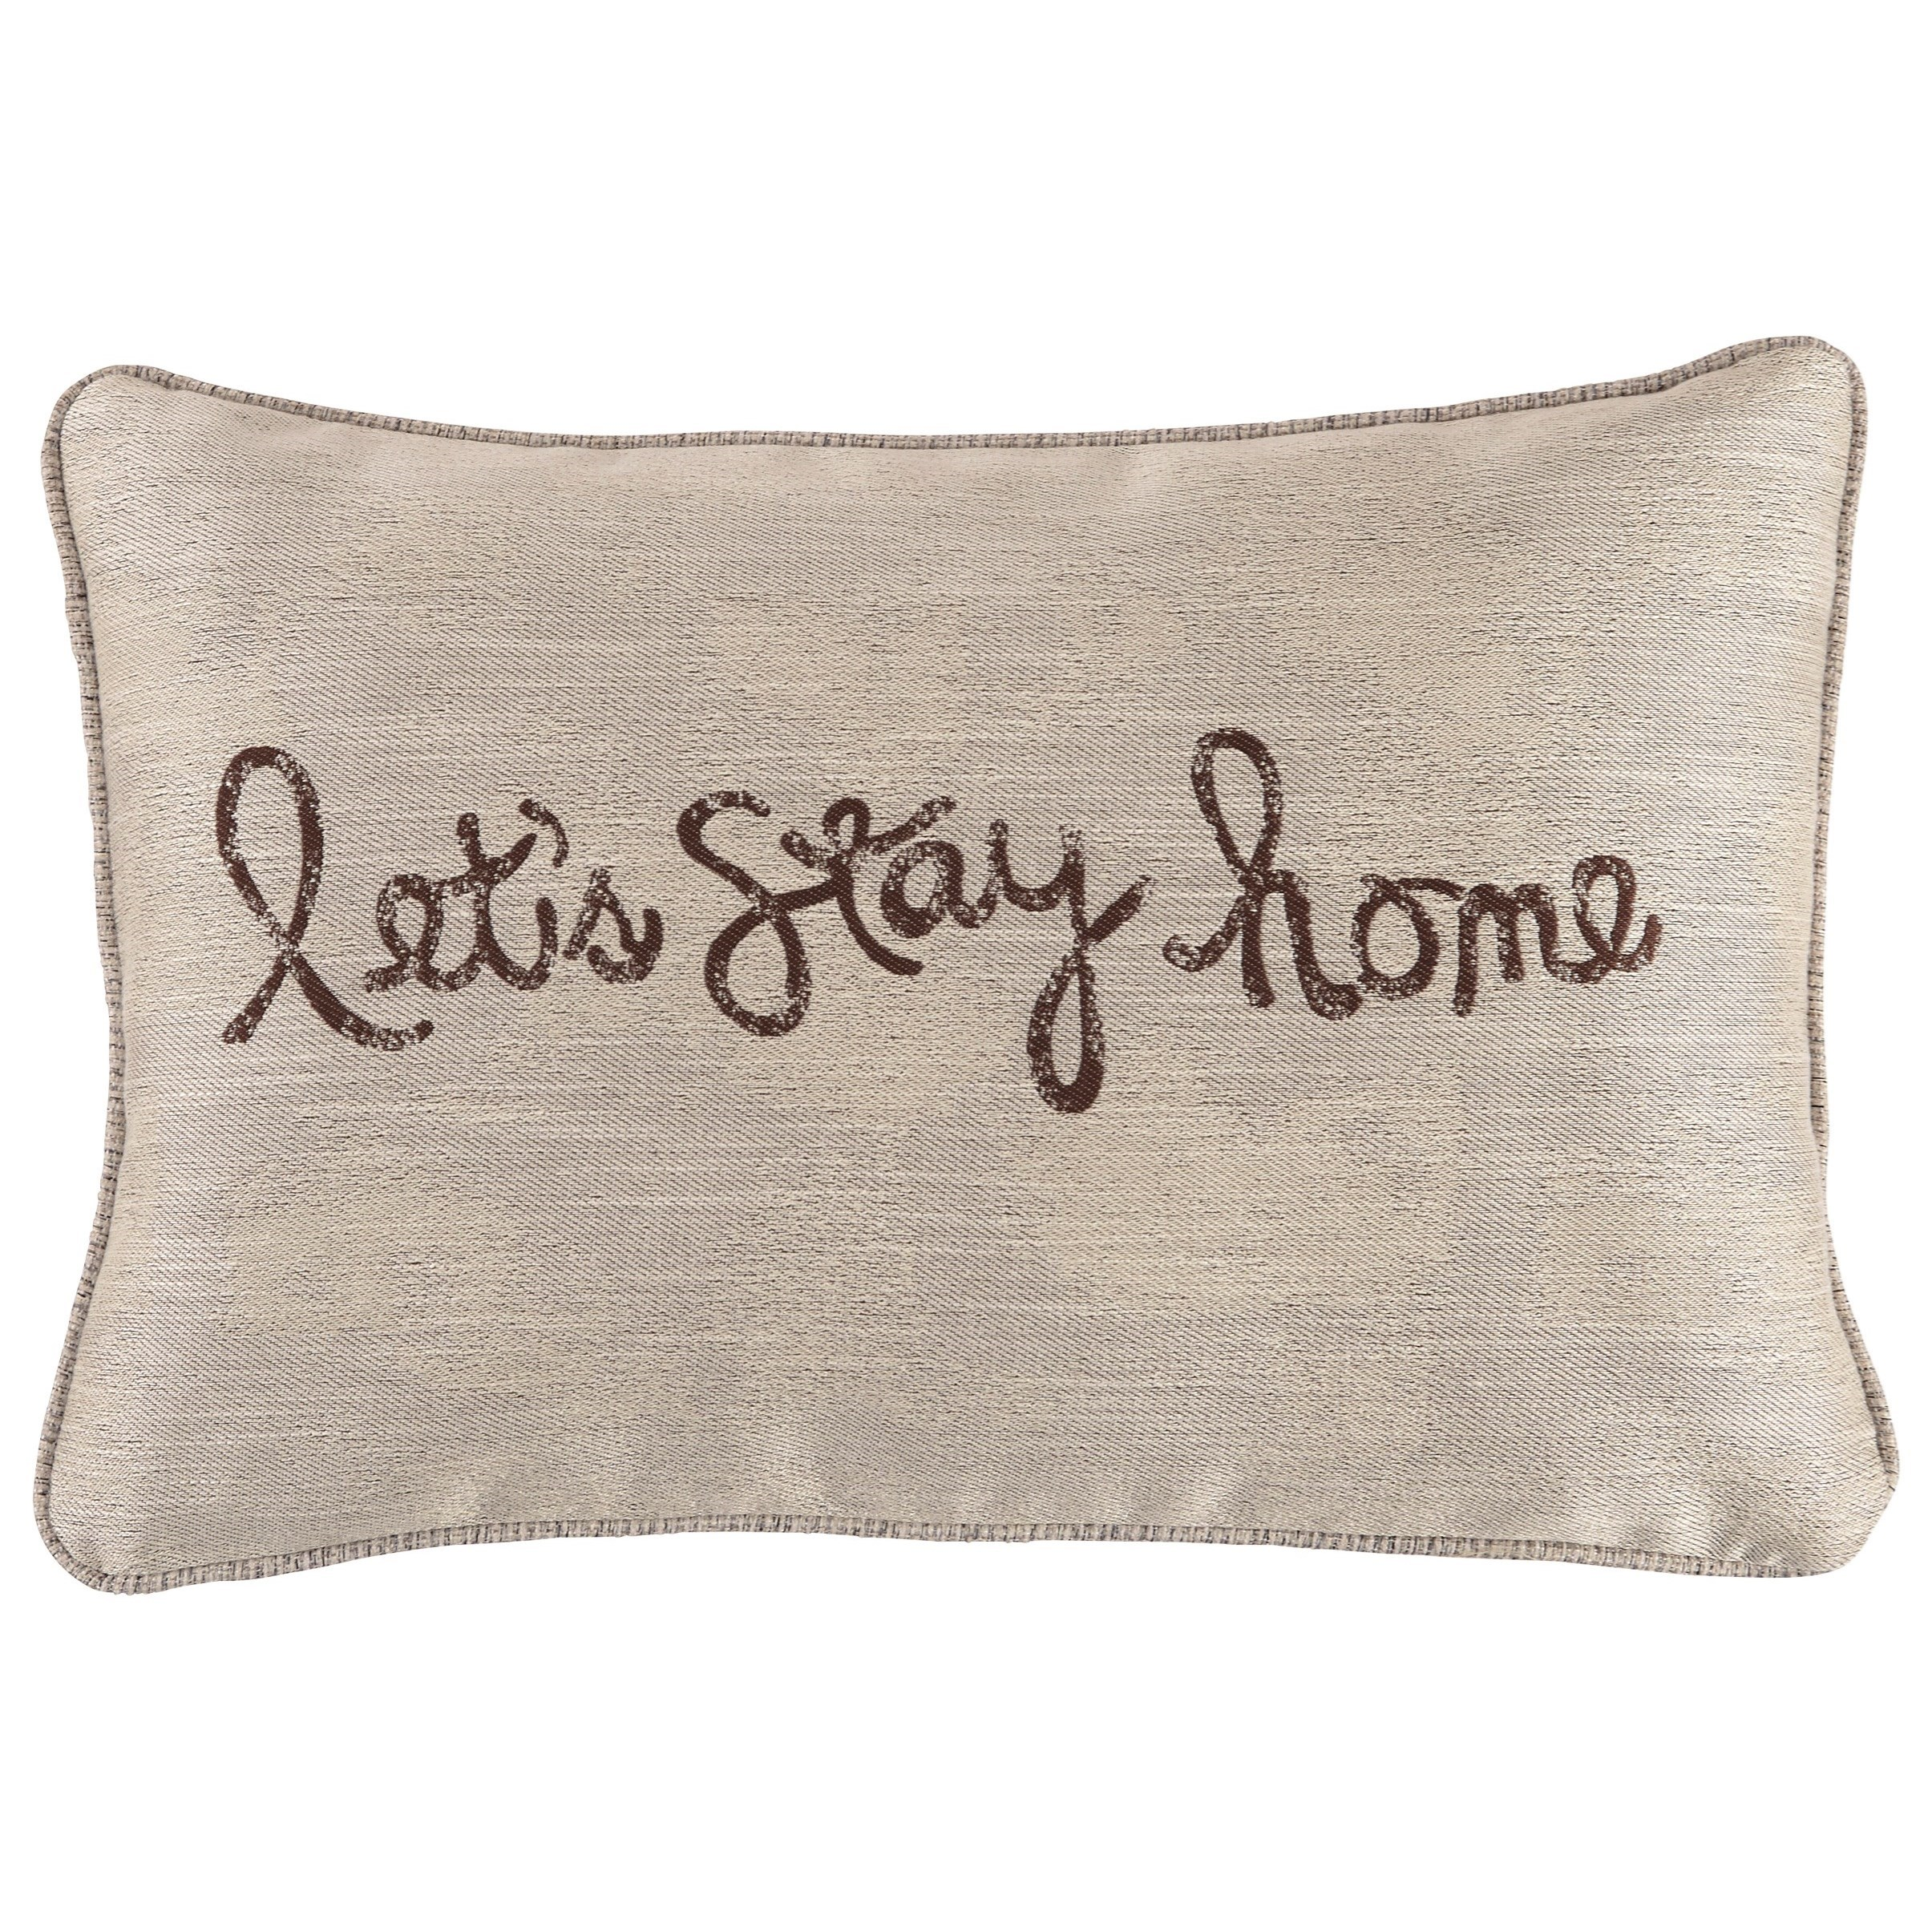 Pillows Let's Stay Home Chocolate Pillow by Vendor 3 at Becker Furniture